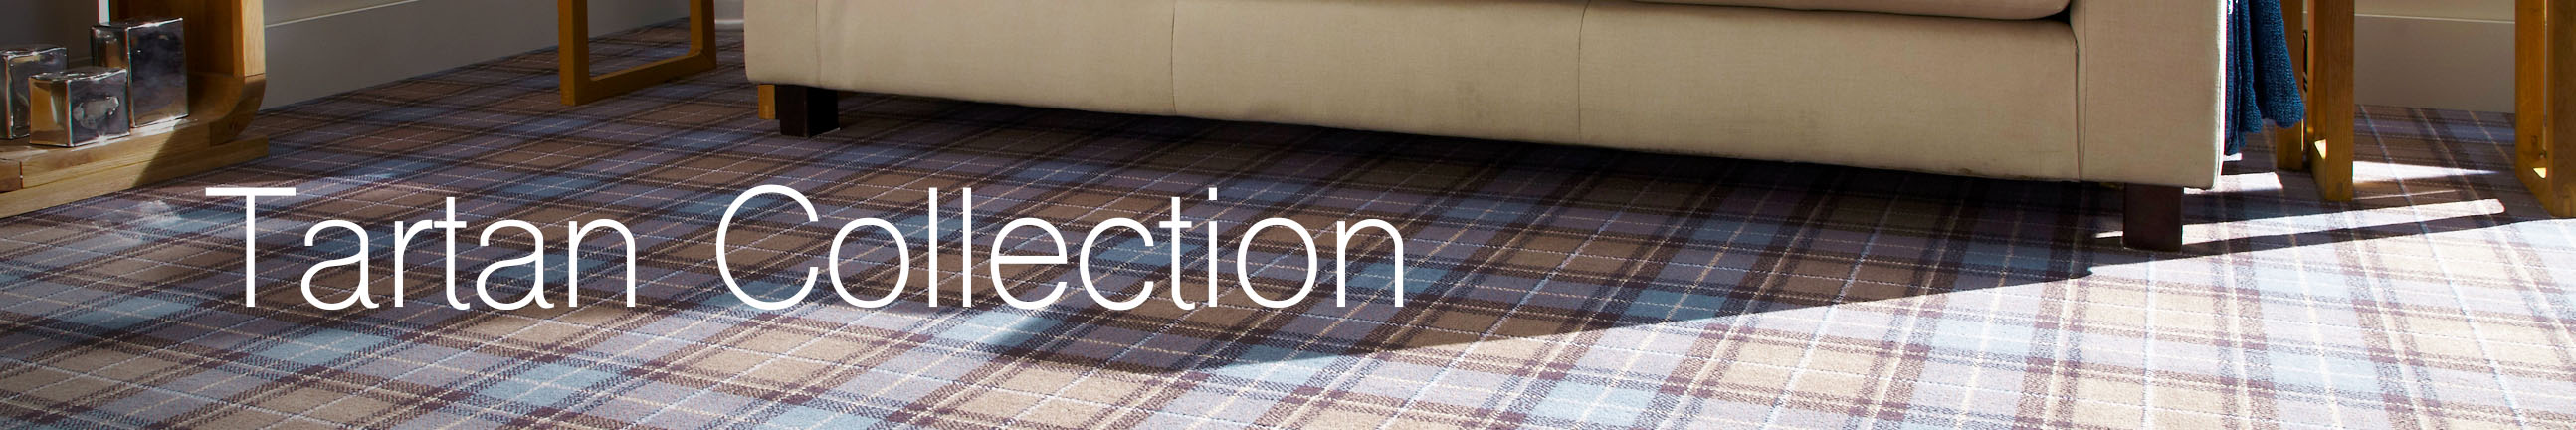 Tartan Collection Axminster Carpet Header